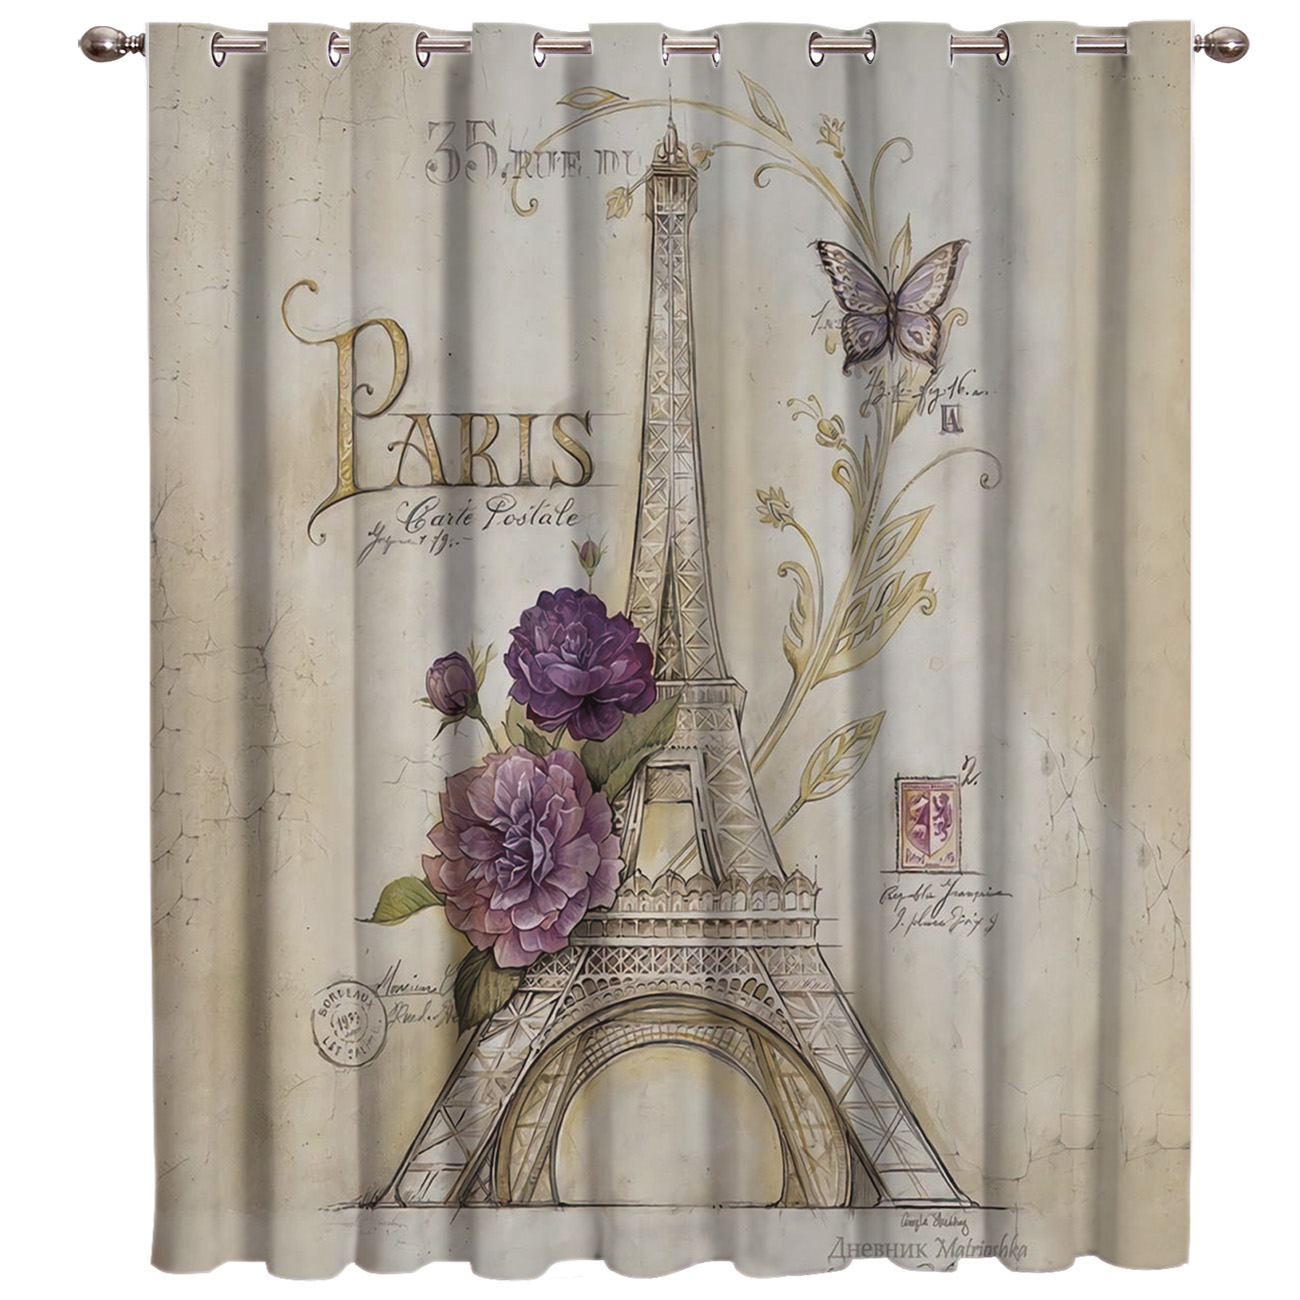 Vintage Paris Tower Butterfly Window Treatments Curtains Valance Room Curtains Large Window Window Blinds Bathroom Curtains